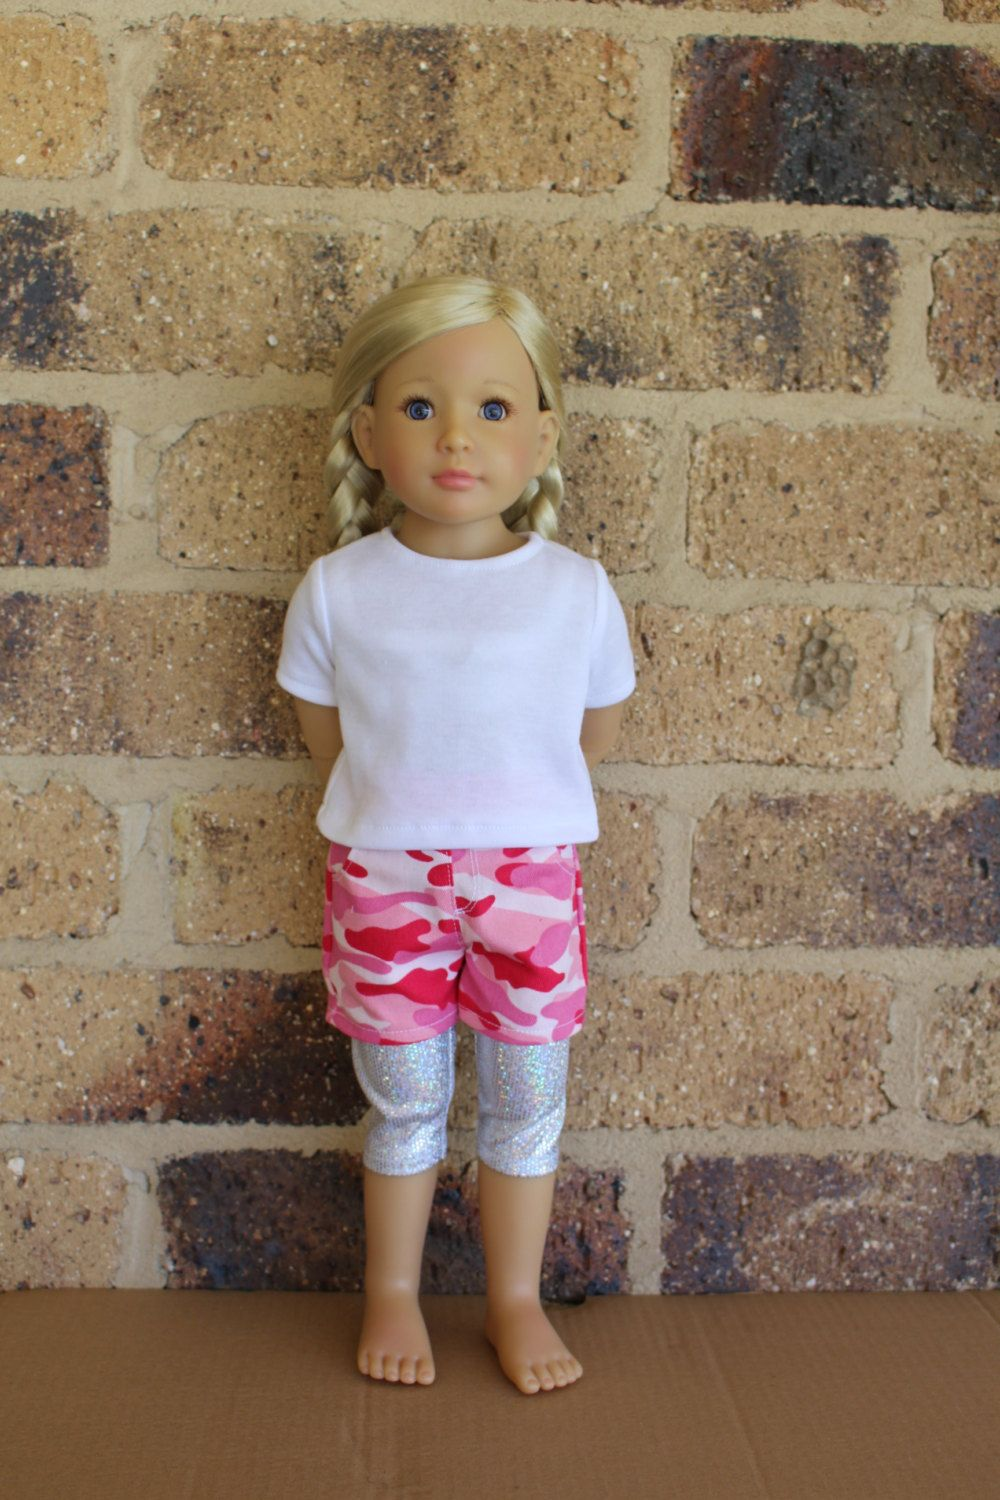 3pc outfit for Kidz n Cats dolls - White Tee, Pink Camoflage Shorts & Sparkly Leggings by SweetSewnups on Etsy